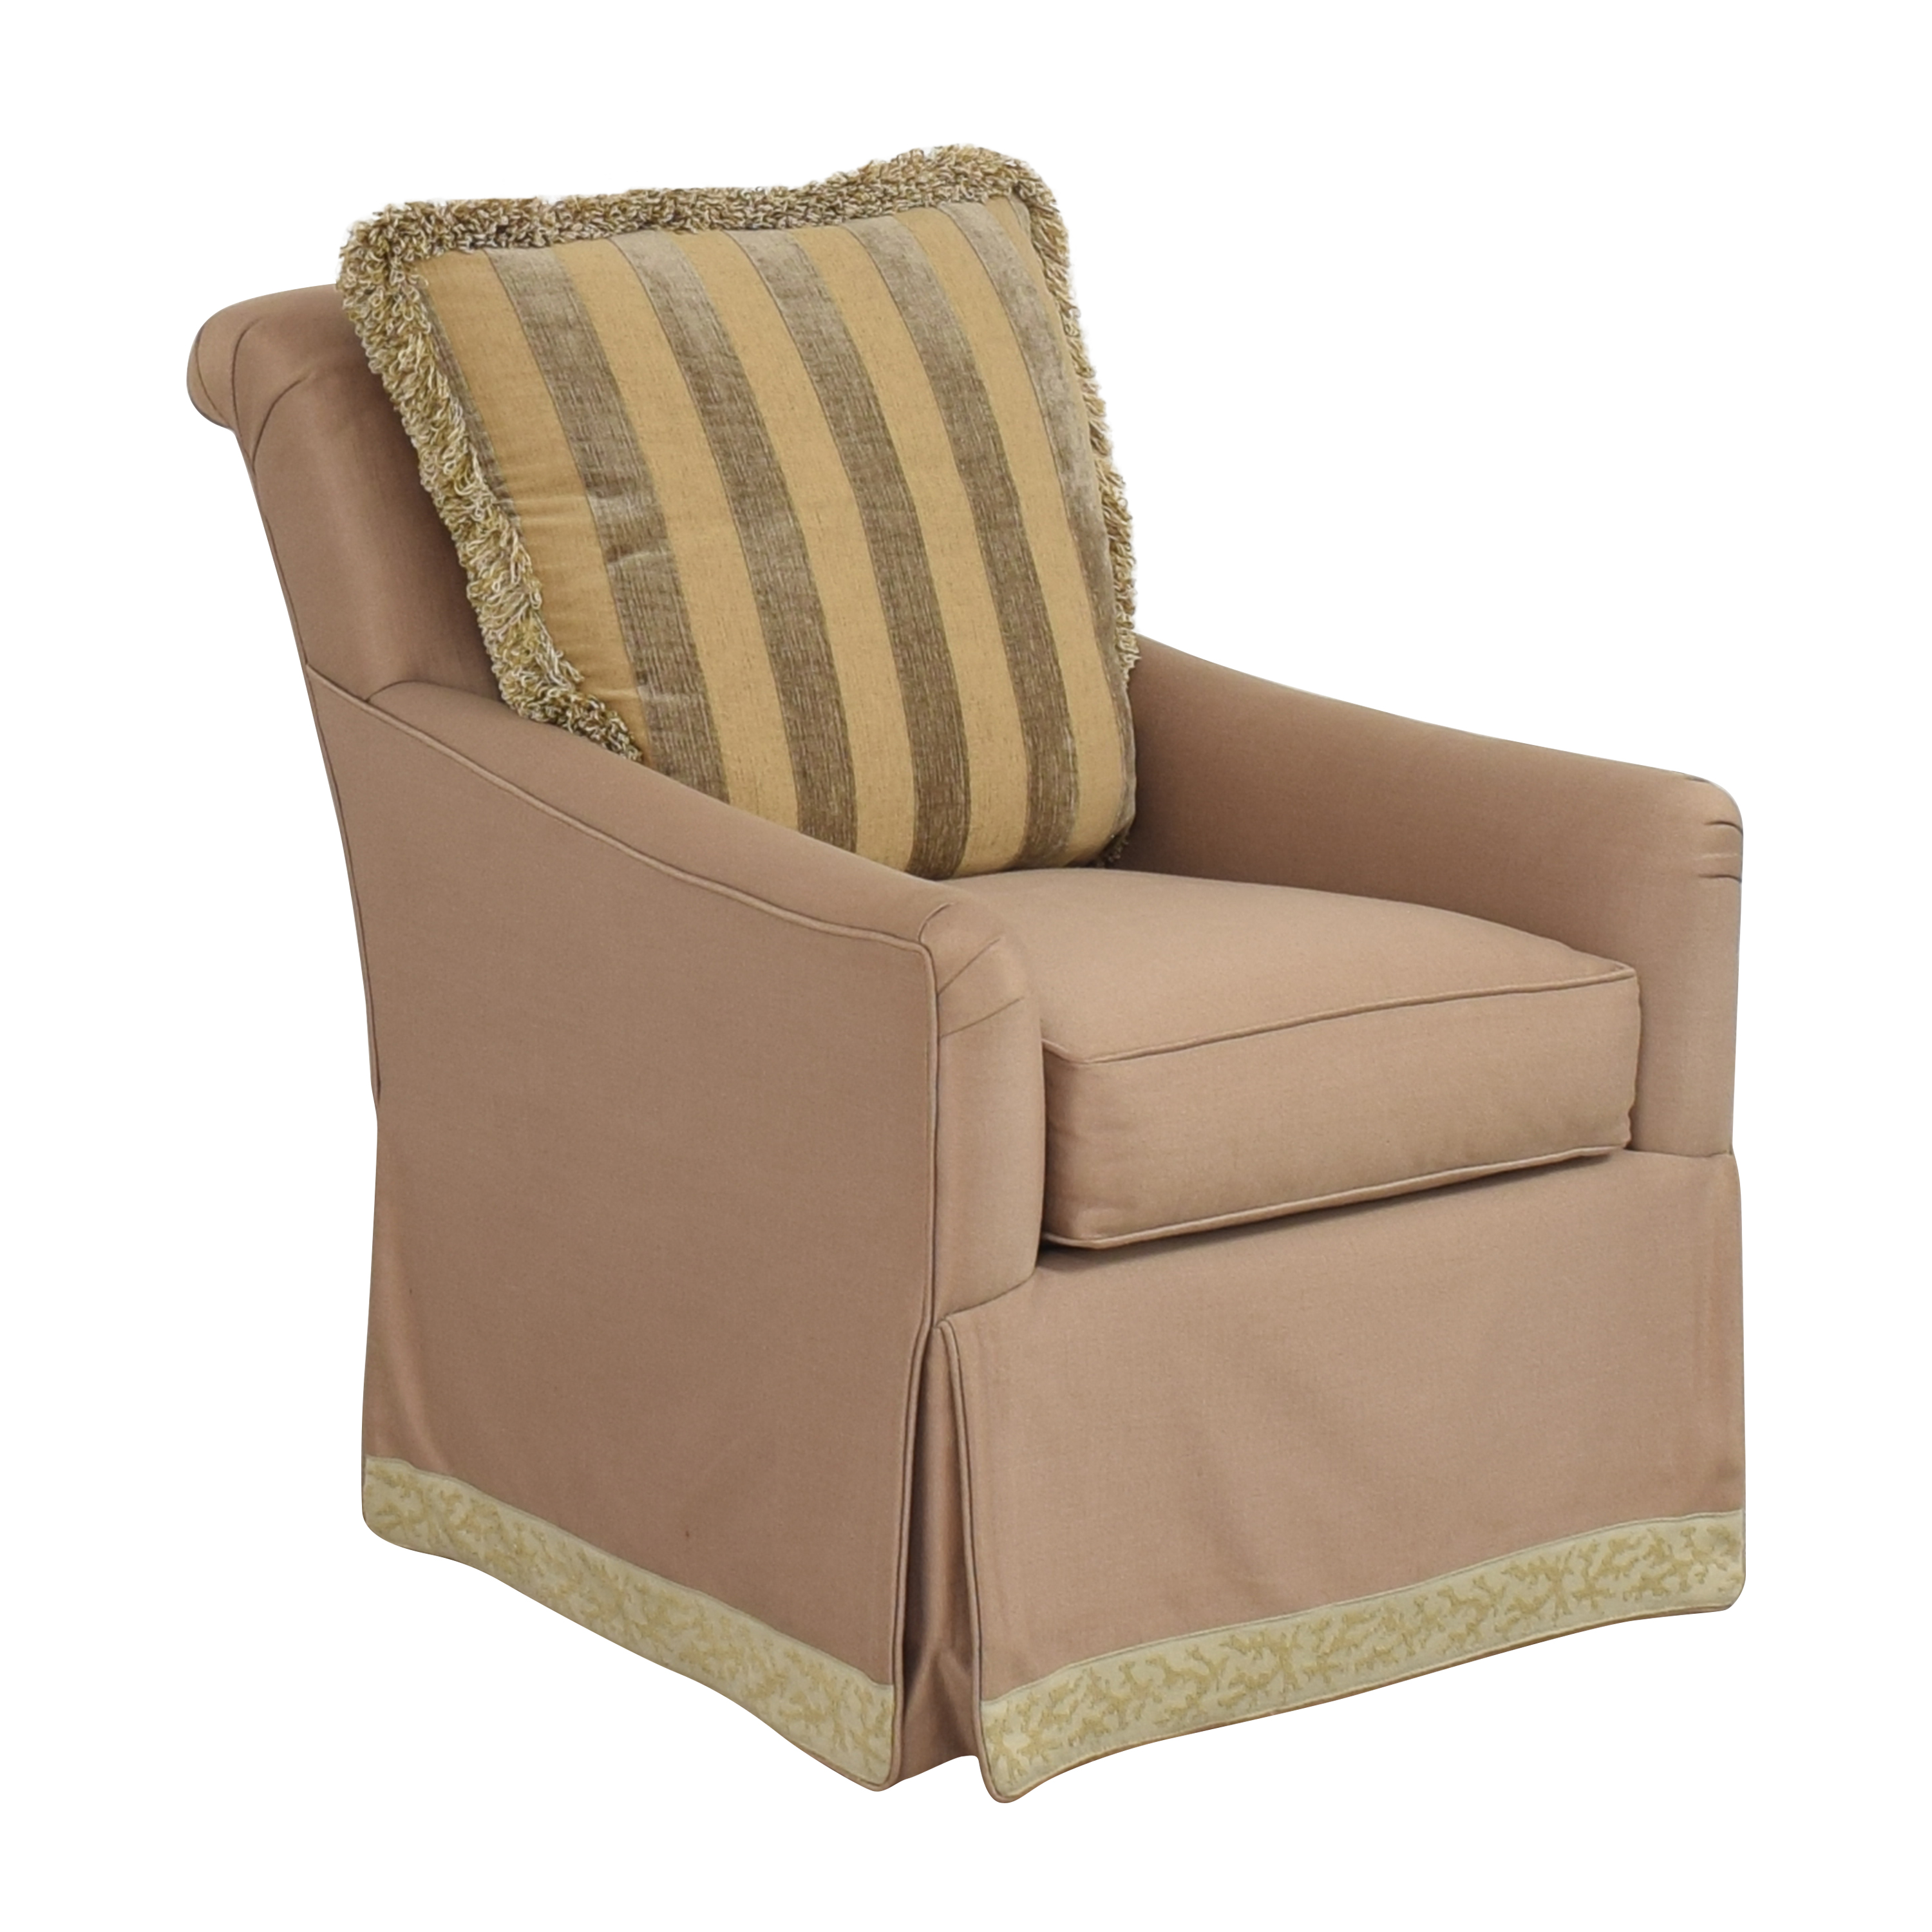 Tomlinson Erwin-Lambeth Upholstered Swivel Chair / Accent Chairs